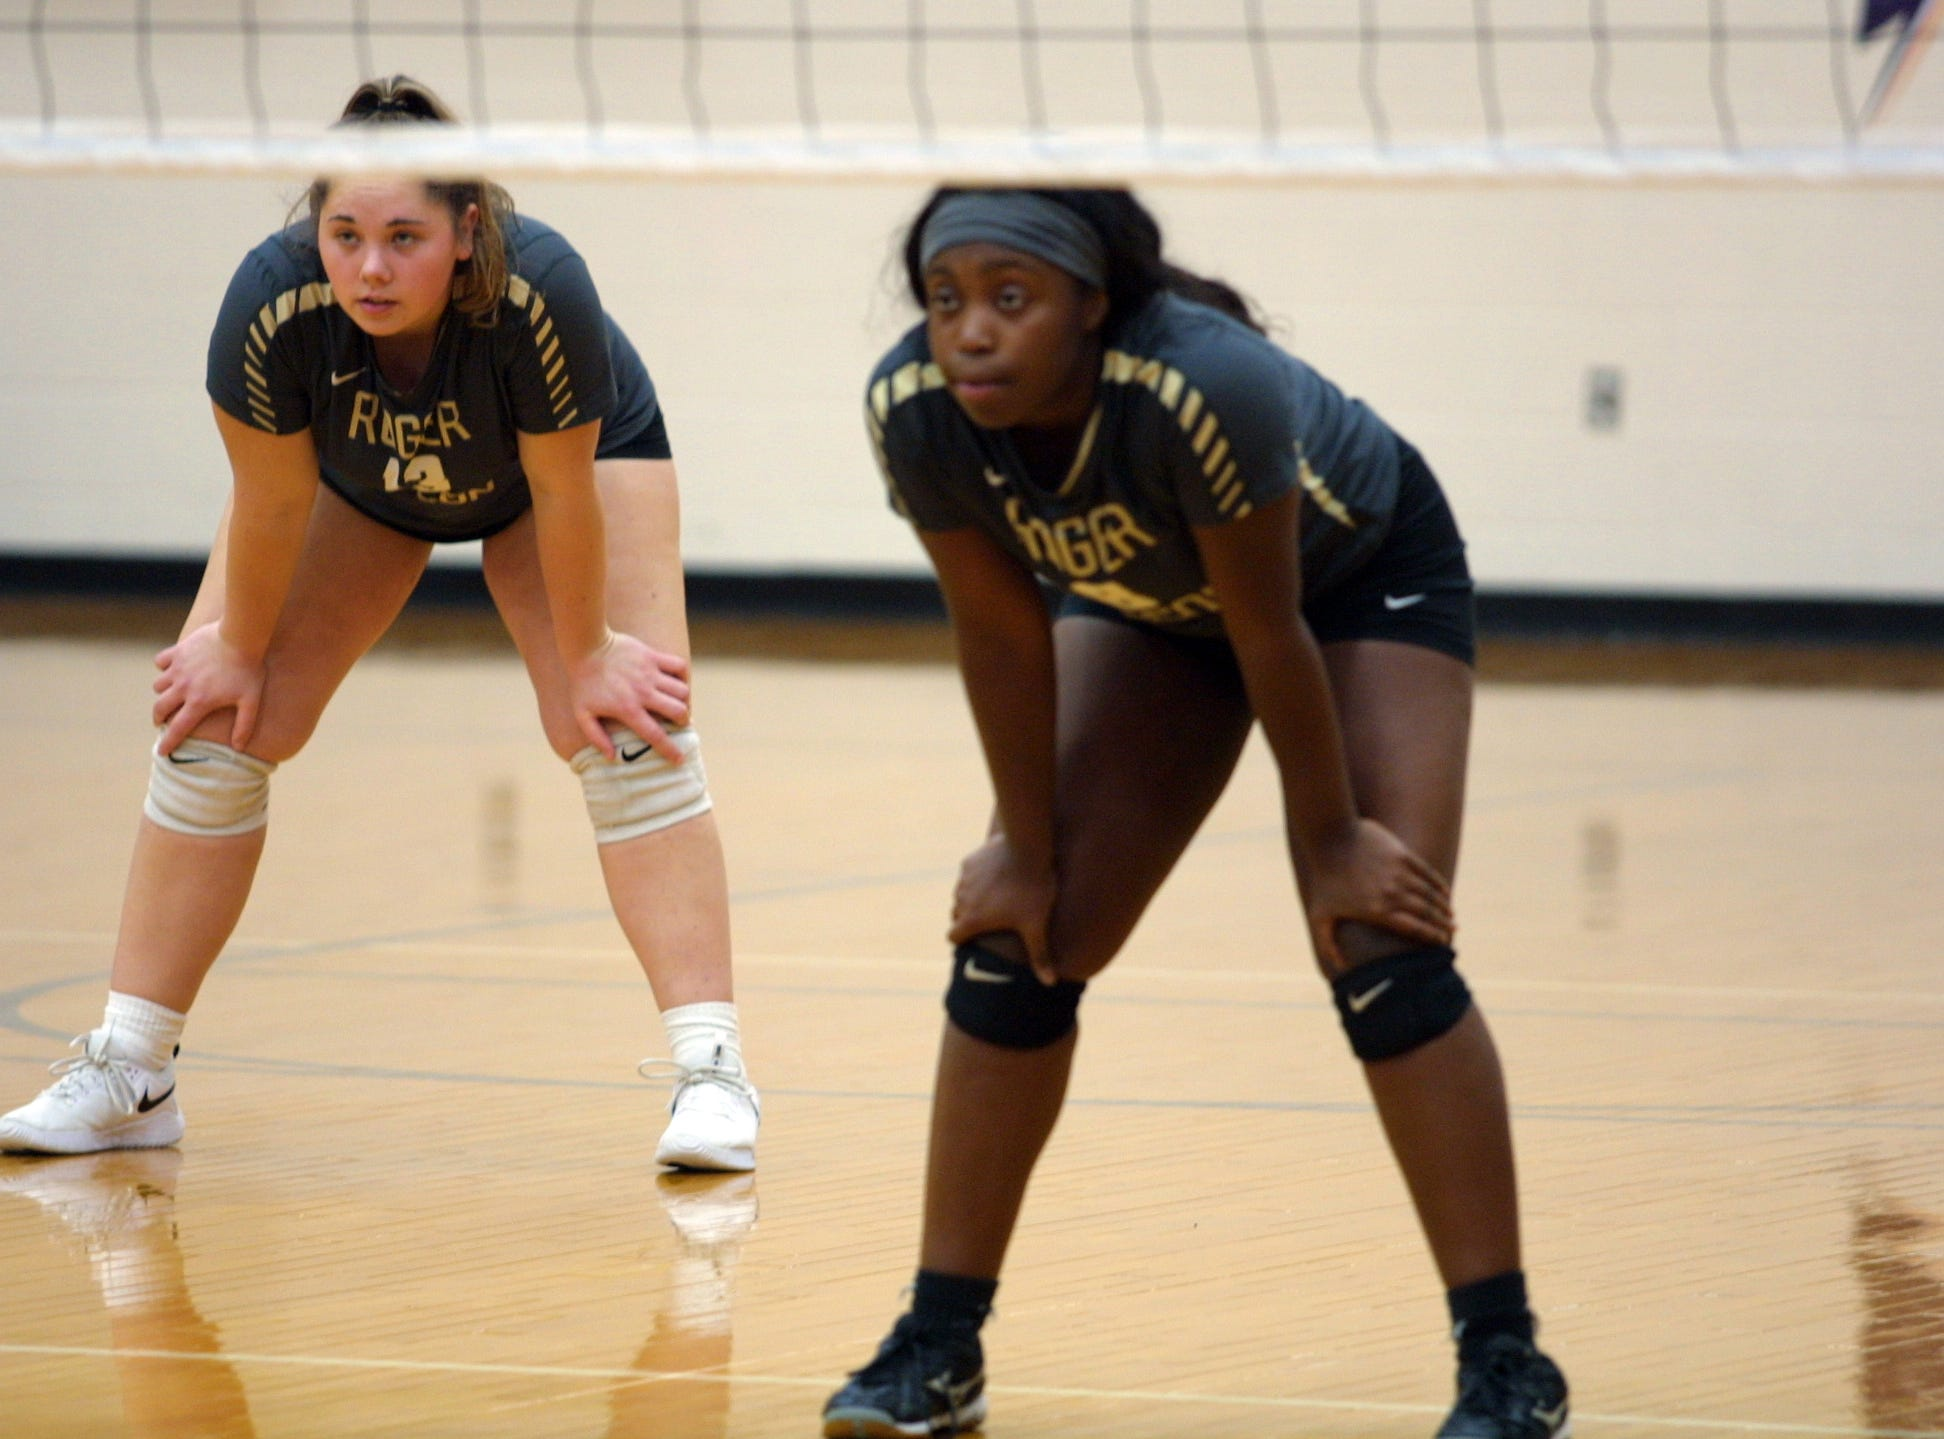 Roger Bacon players Haley Hoffman (13) and Olivia Berry (8) prepare for a return during their team's match against Bishop Fenwick in the regional final at Butler High School, Saturday, Nov. 3, 2018.